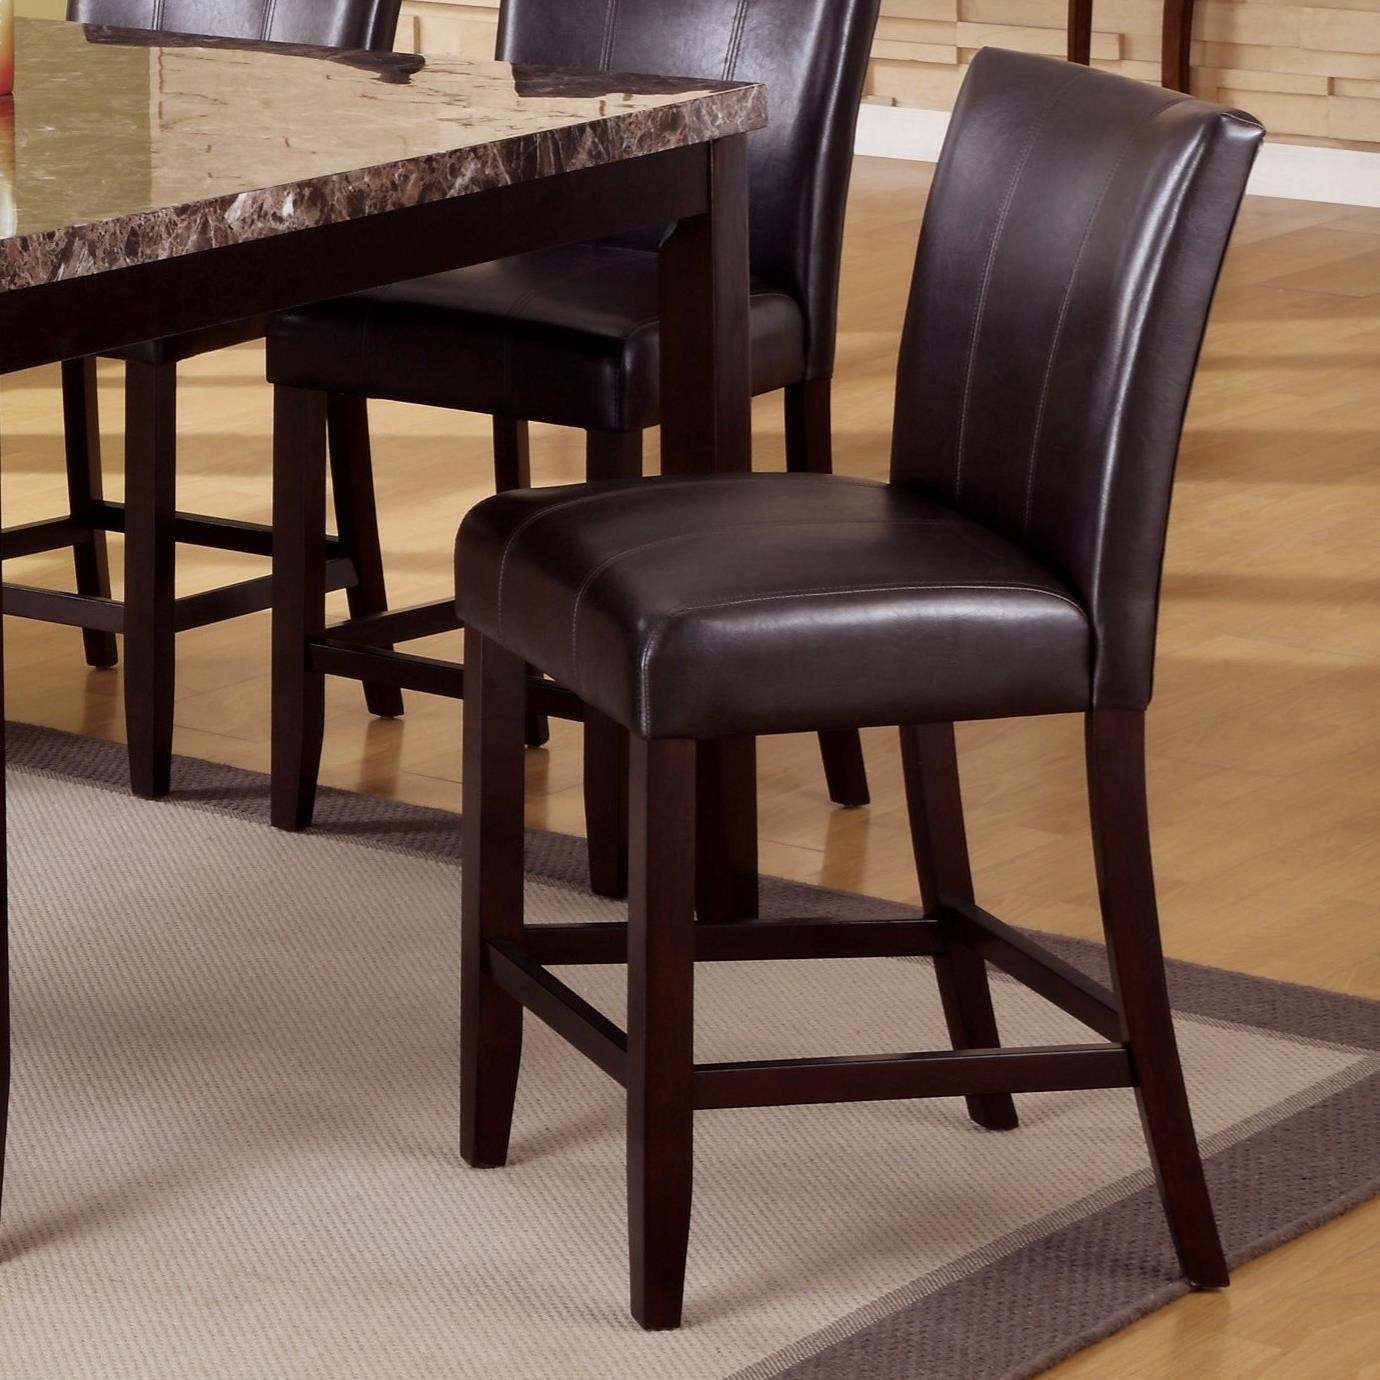 upholstered counter height chairs john lewis chair cushion covers crown mark madrid and ferrara 2723s 24